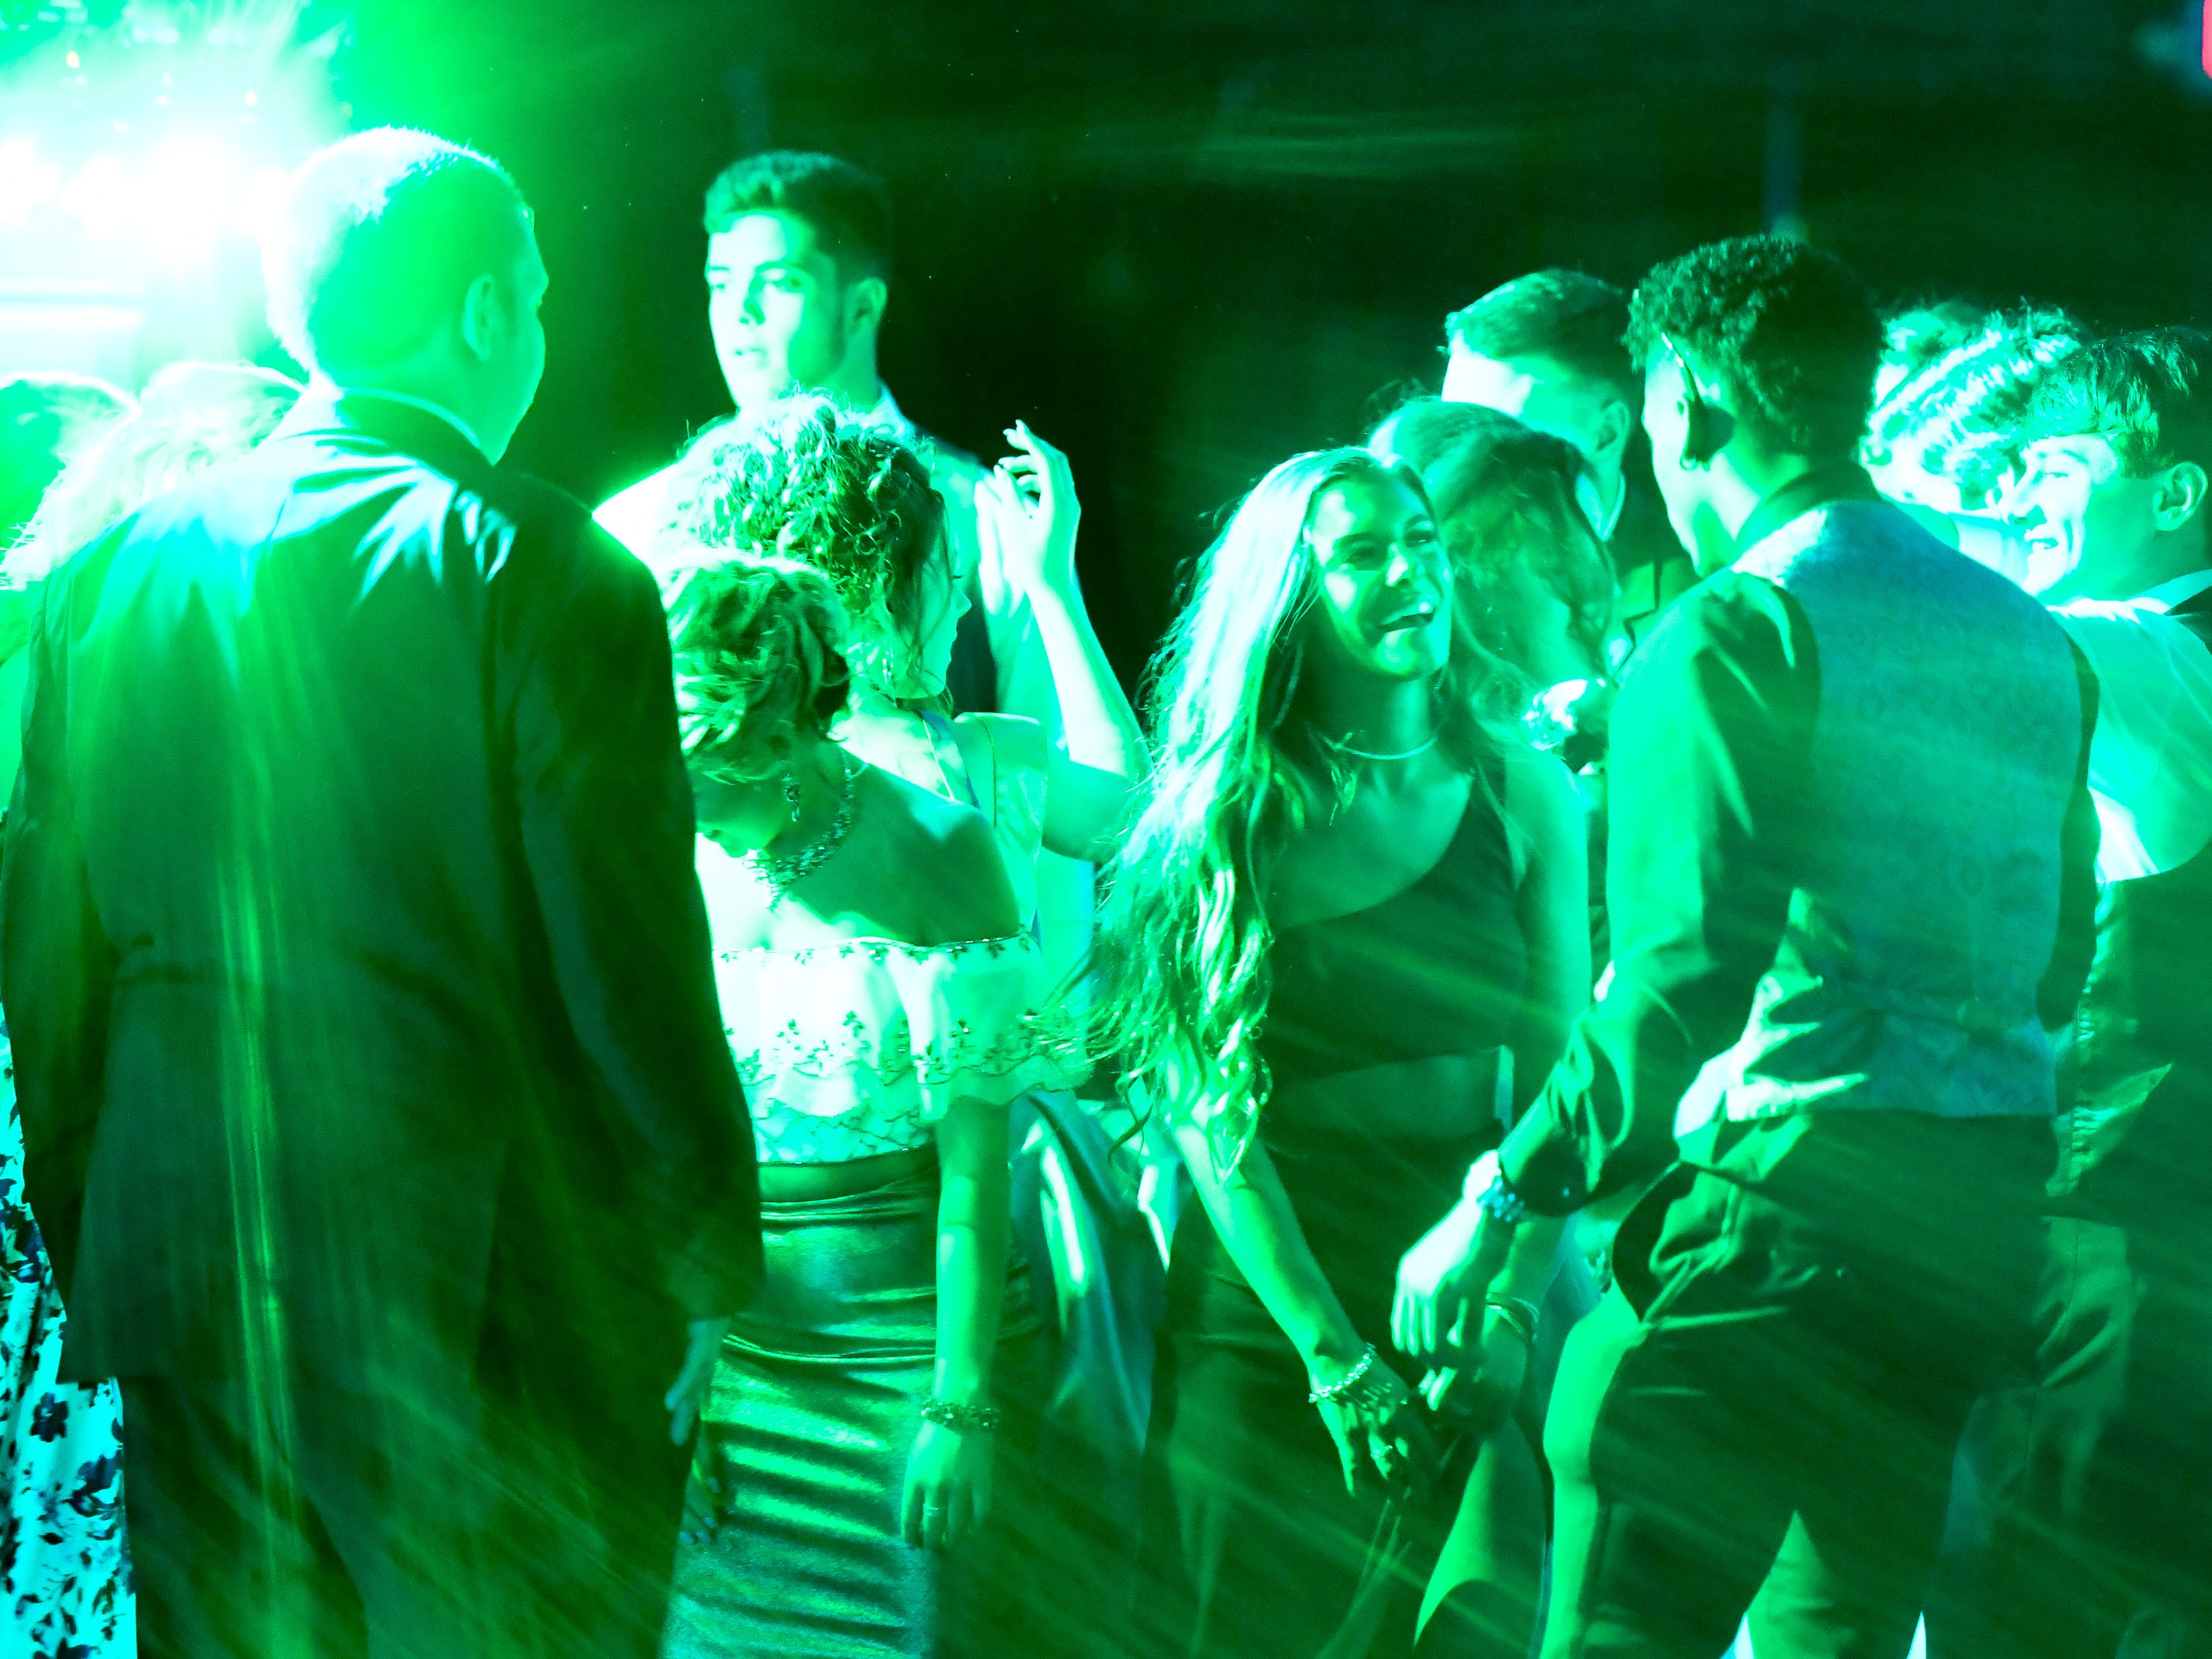 Colored lights play across the dance floor at the Henderson County High Prom held at Colonel Gym Saturday, April 13, 2019.